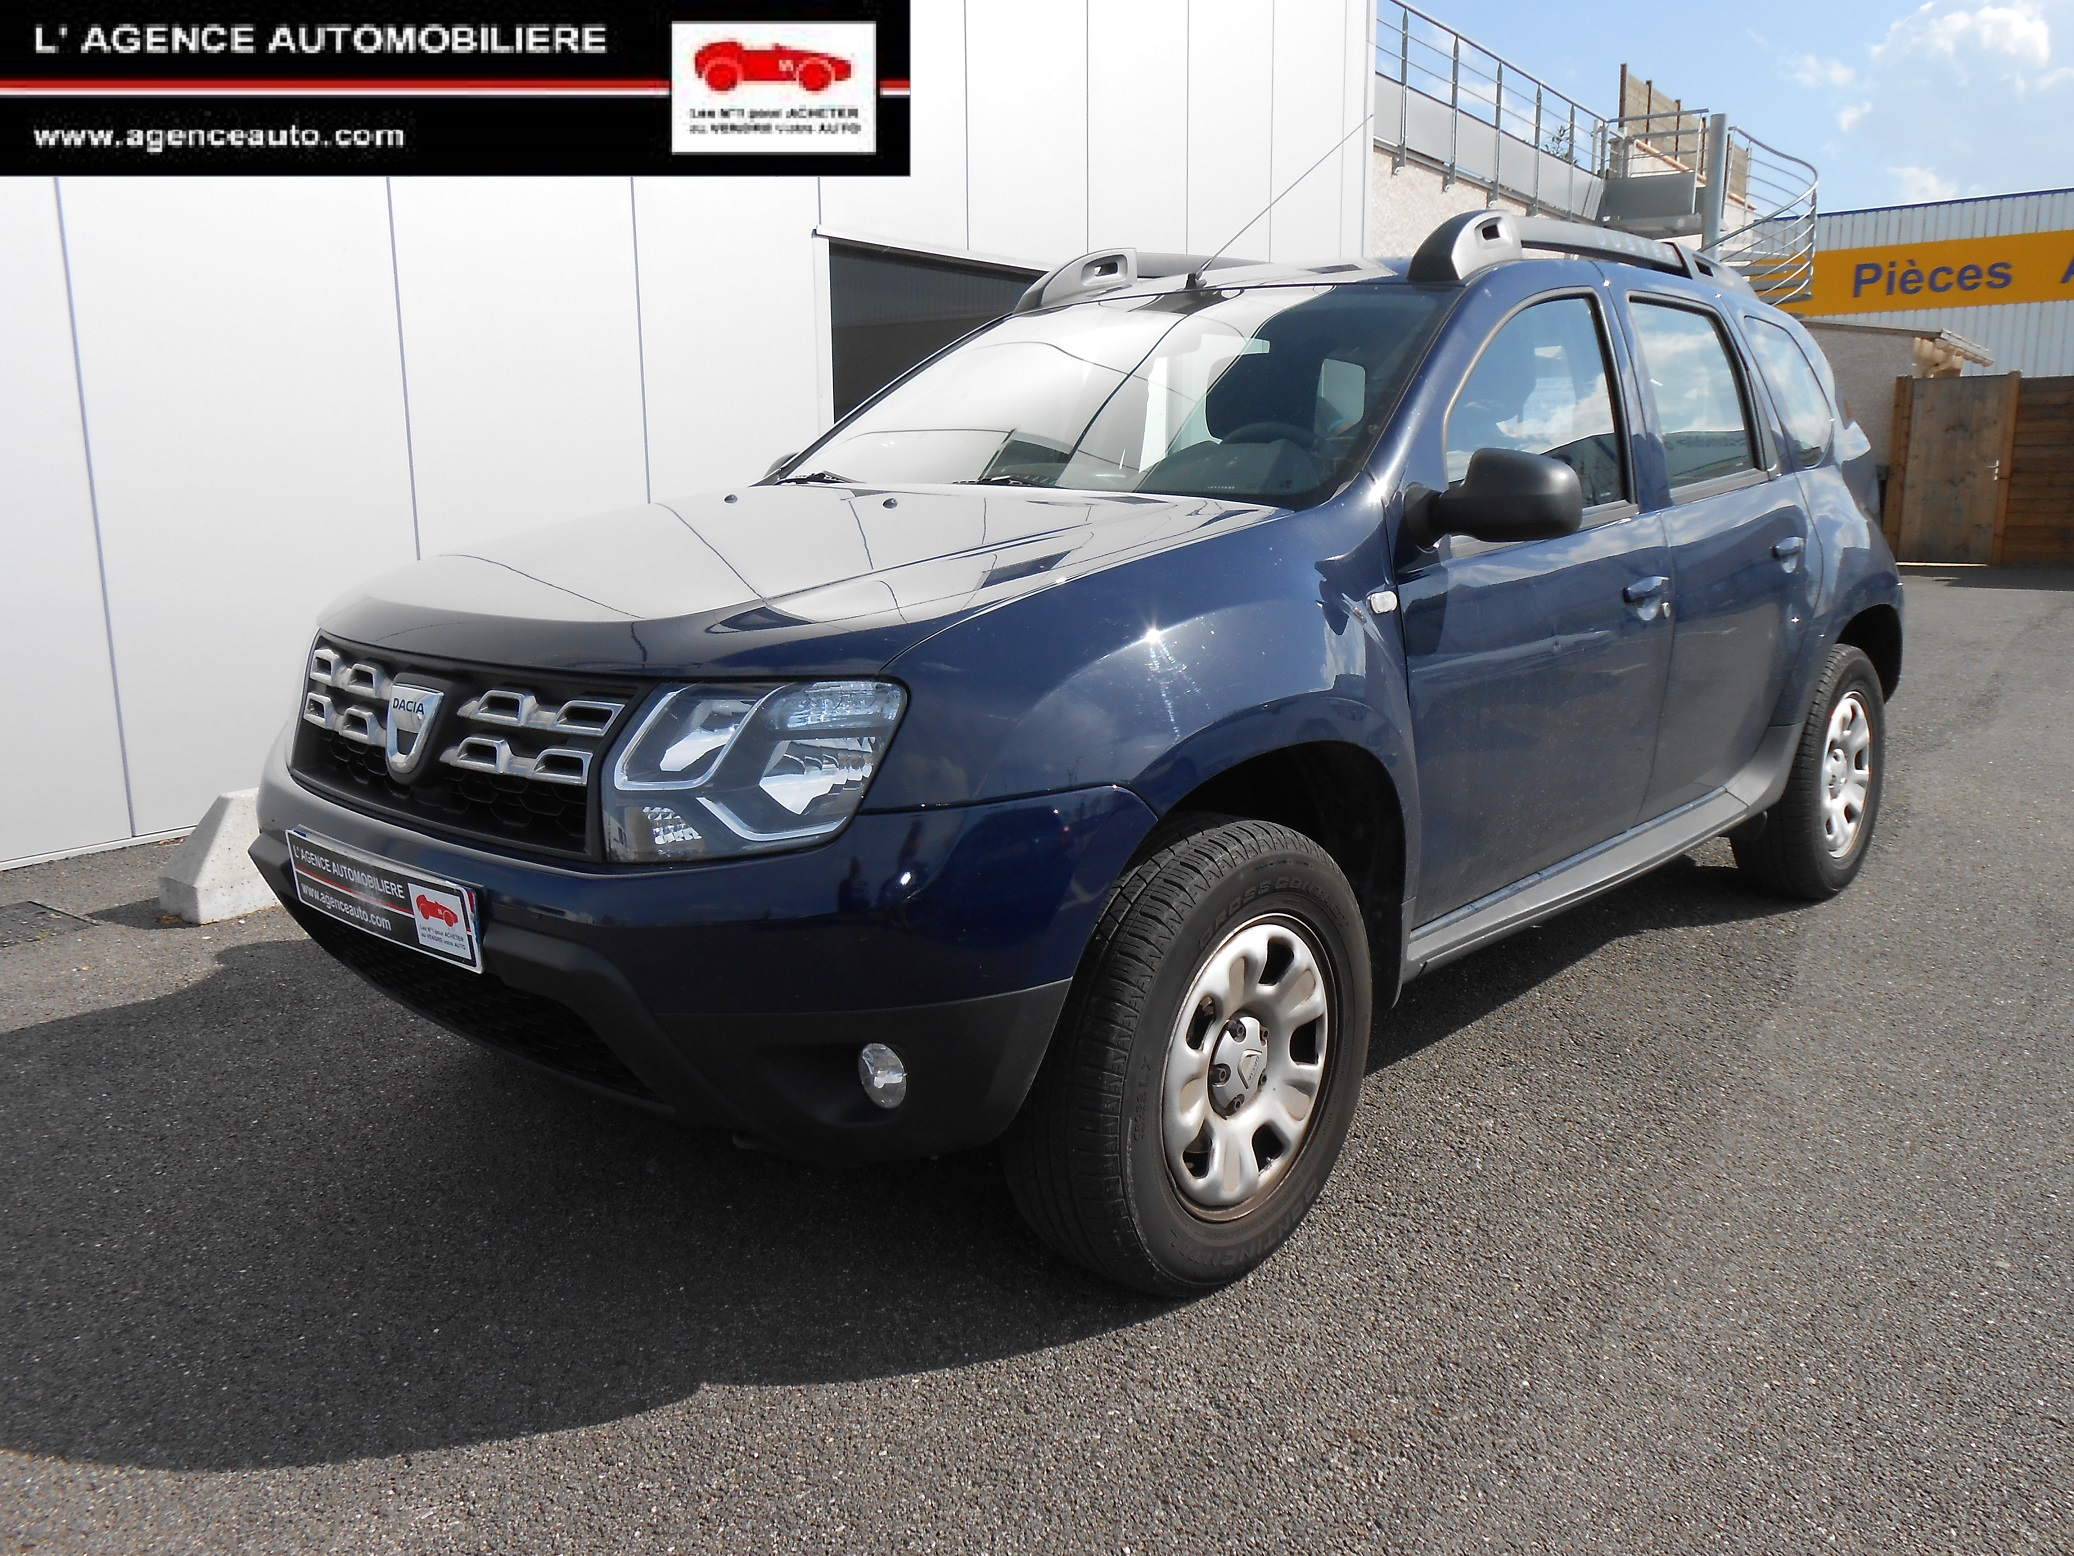 dacia duster 1 5 dci 110 laureate 4x4 utilitaire occasion carcassonne pas cher voiture occasion. Black Bedroom Furniture Sets. Home Design Ideas